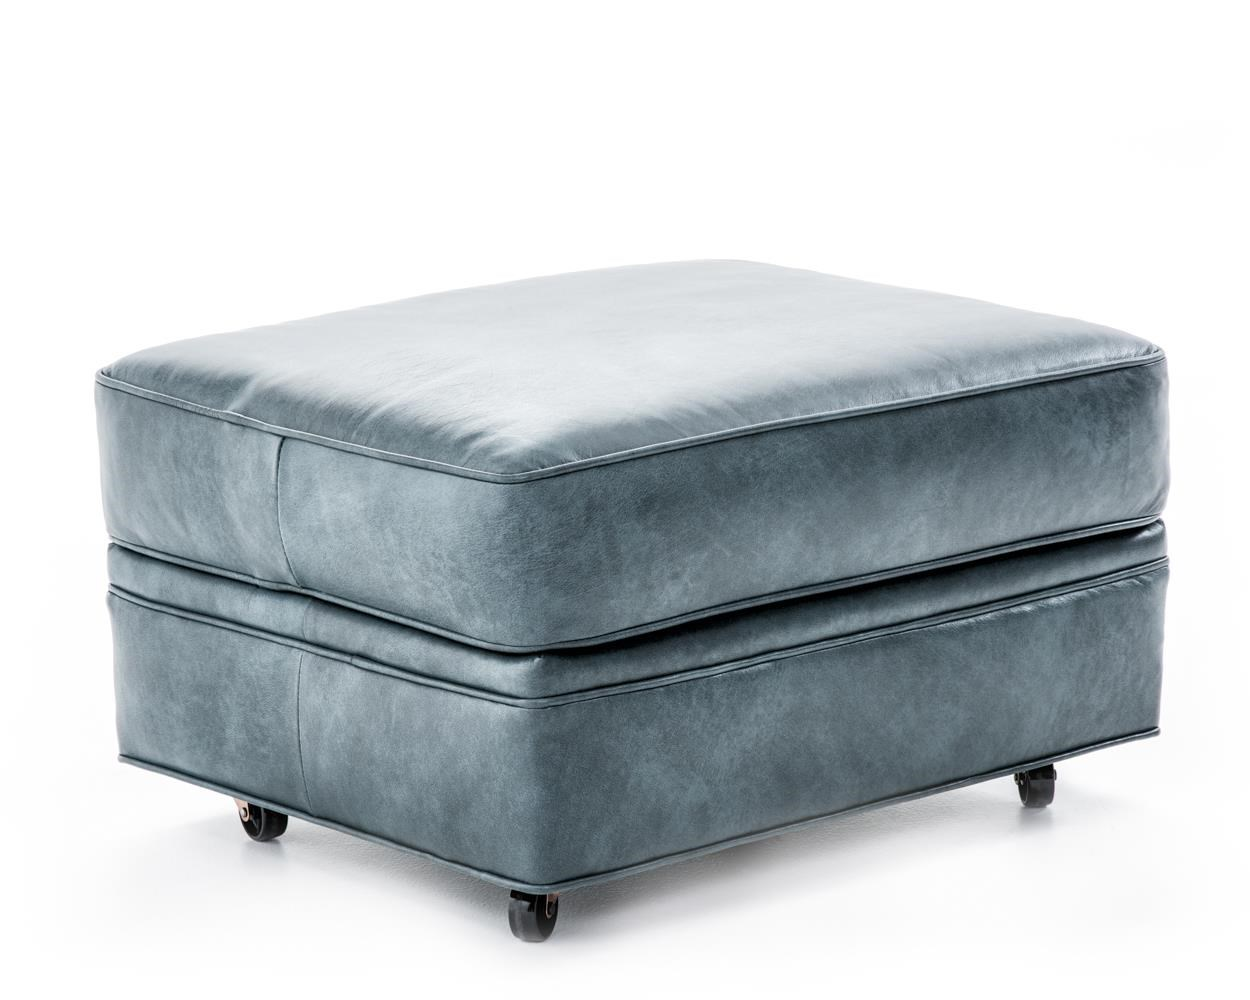 Sherrill Design Your Own Customizable Ottoman - Item Number: 9601-00